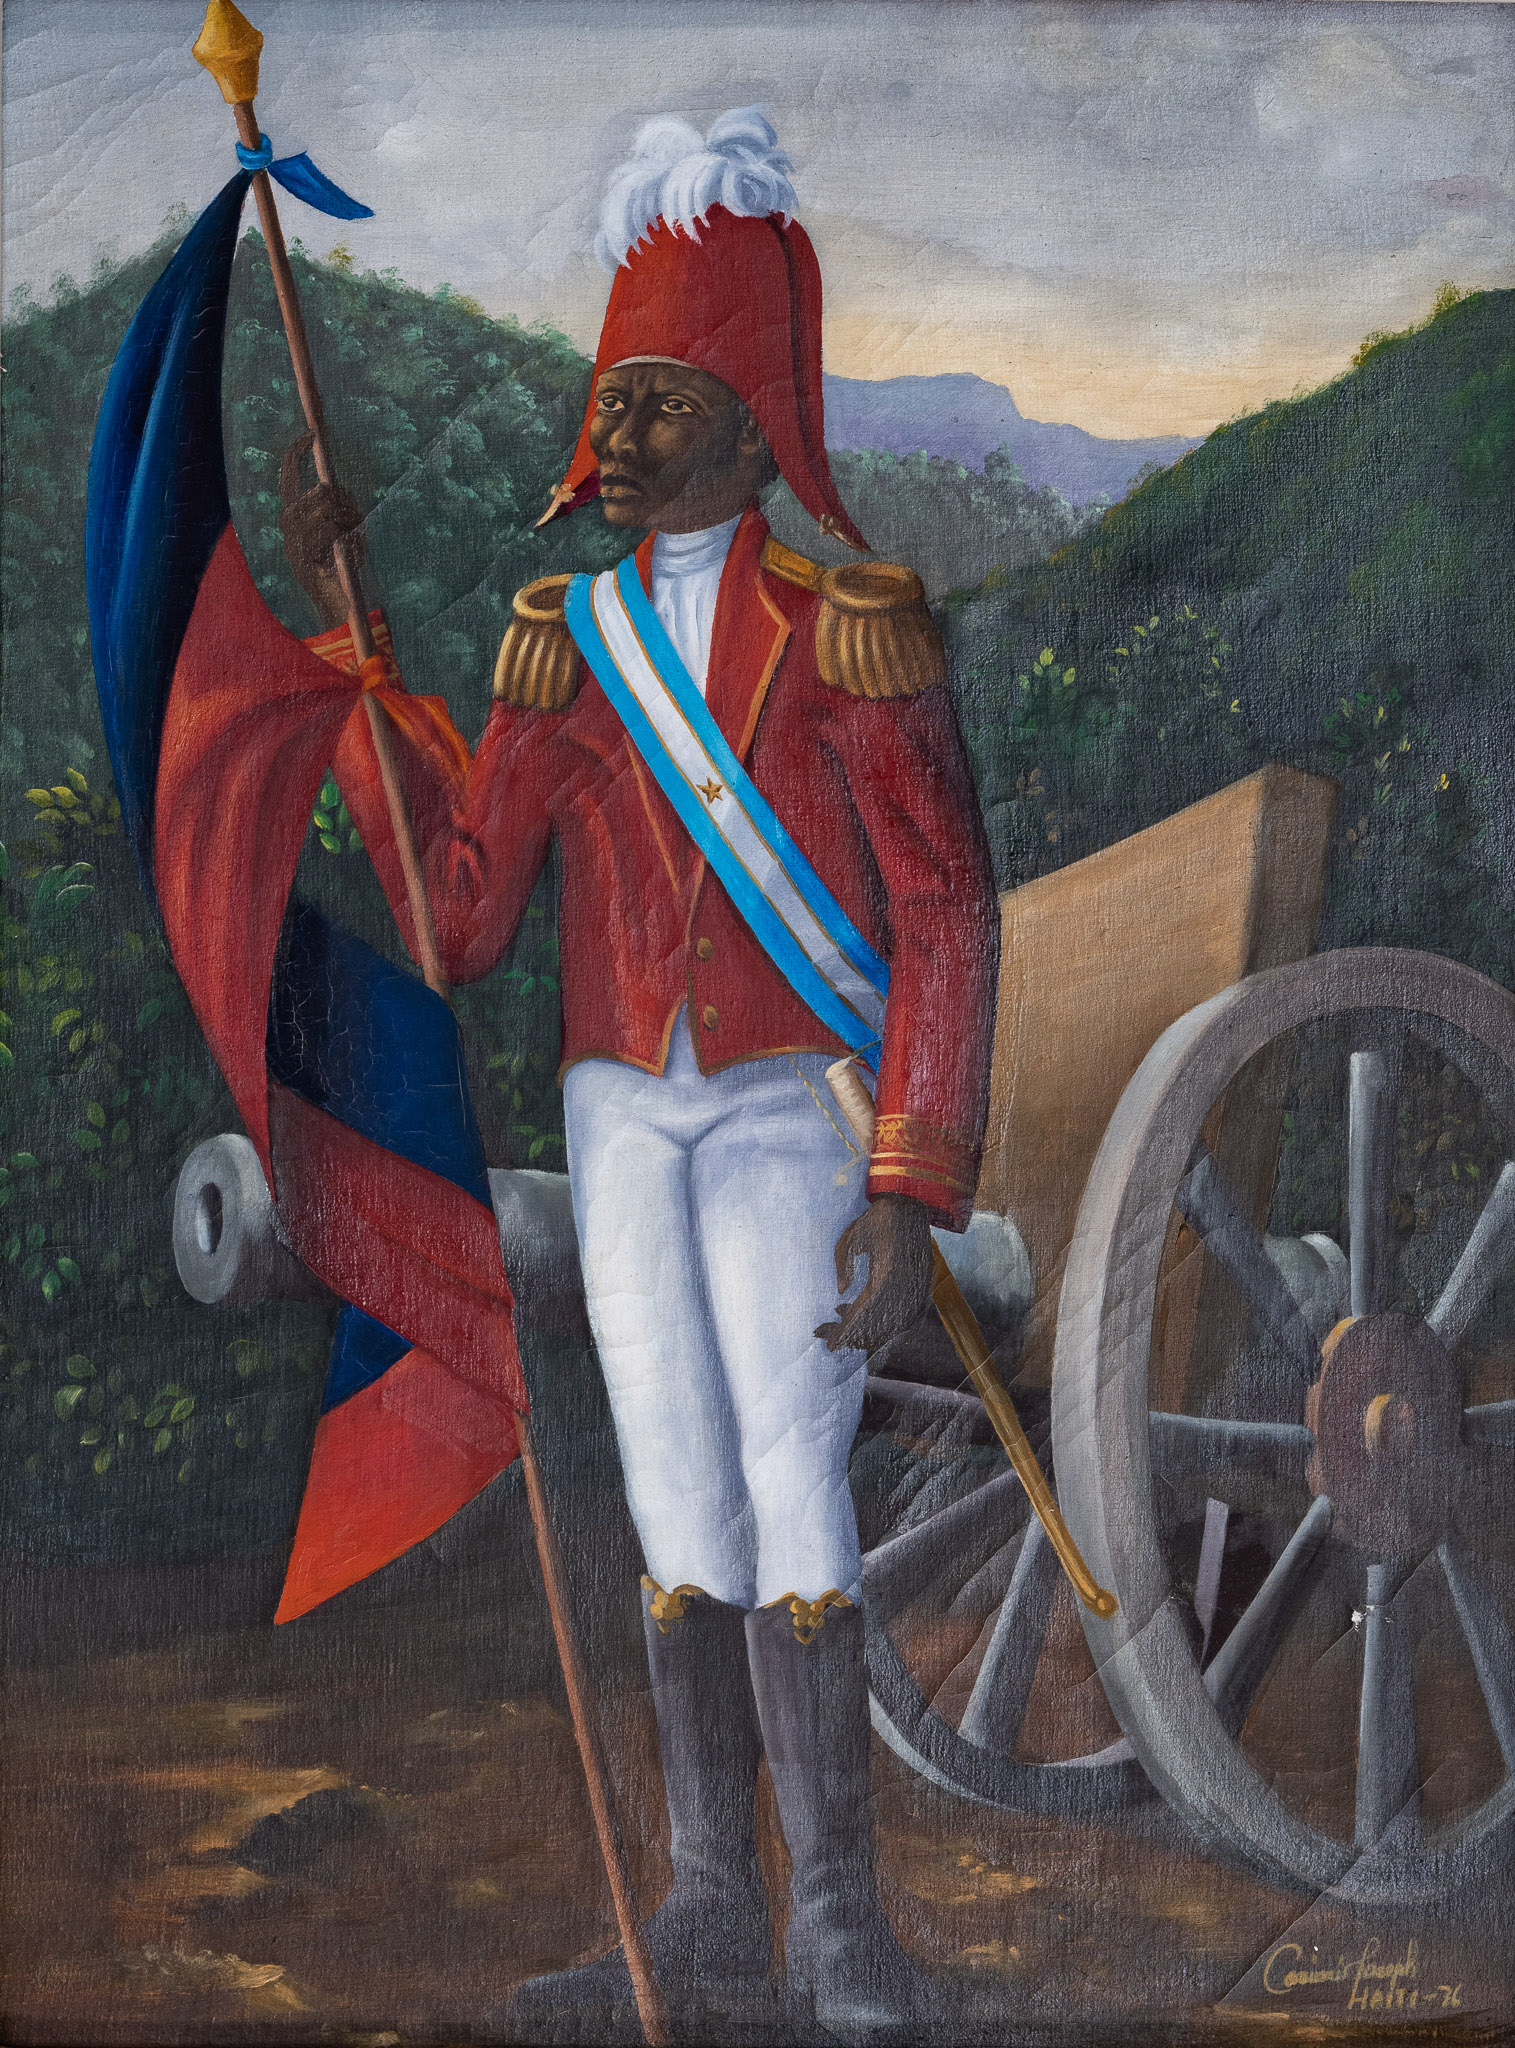 General Jean-Jacques Dessalines holding the Flag, 1976